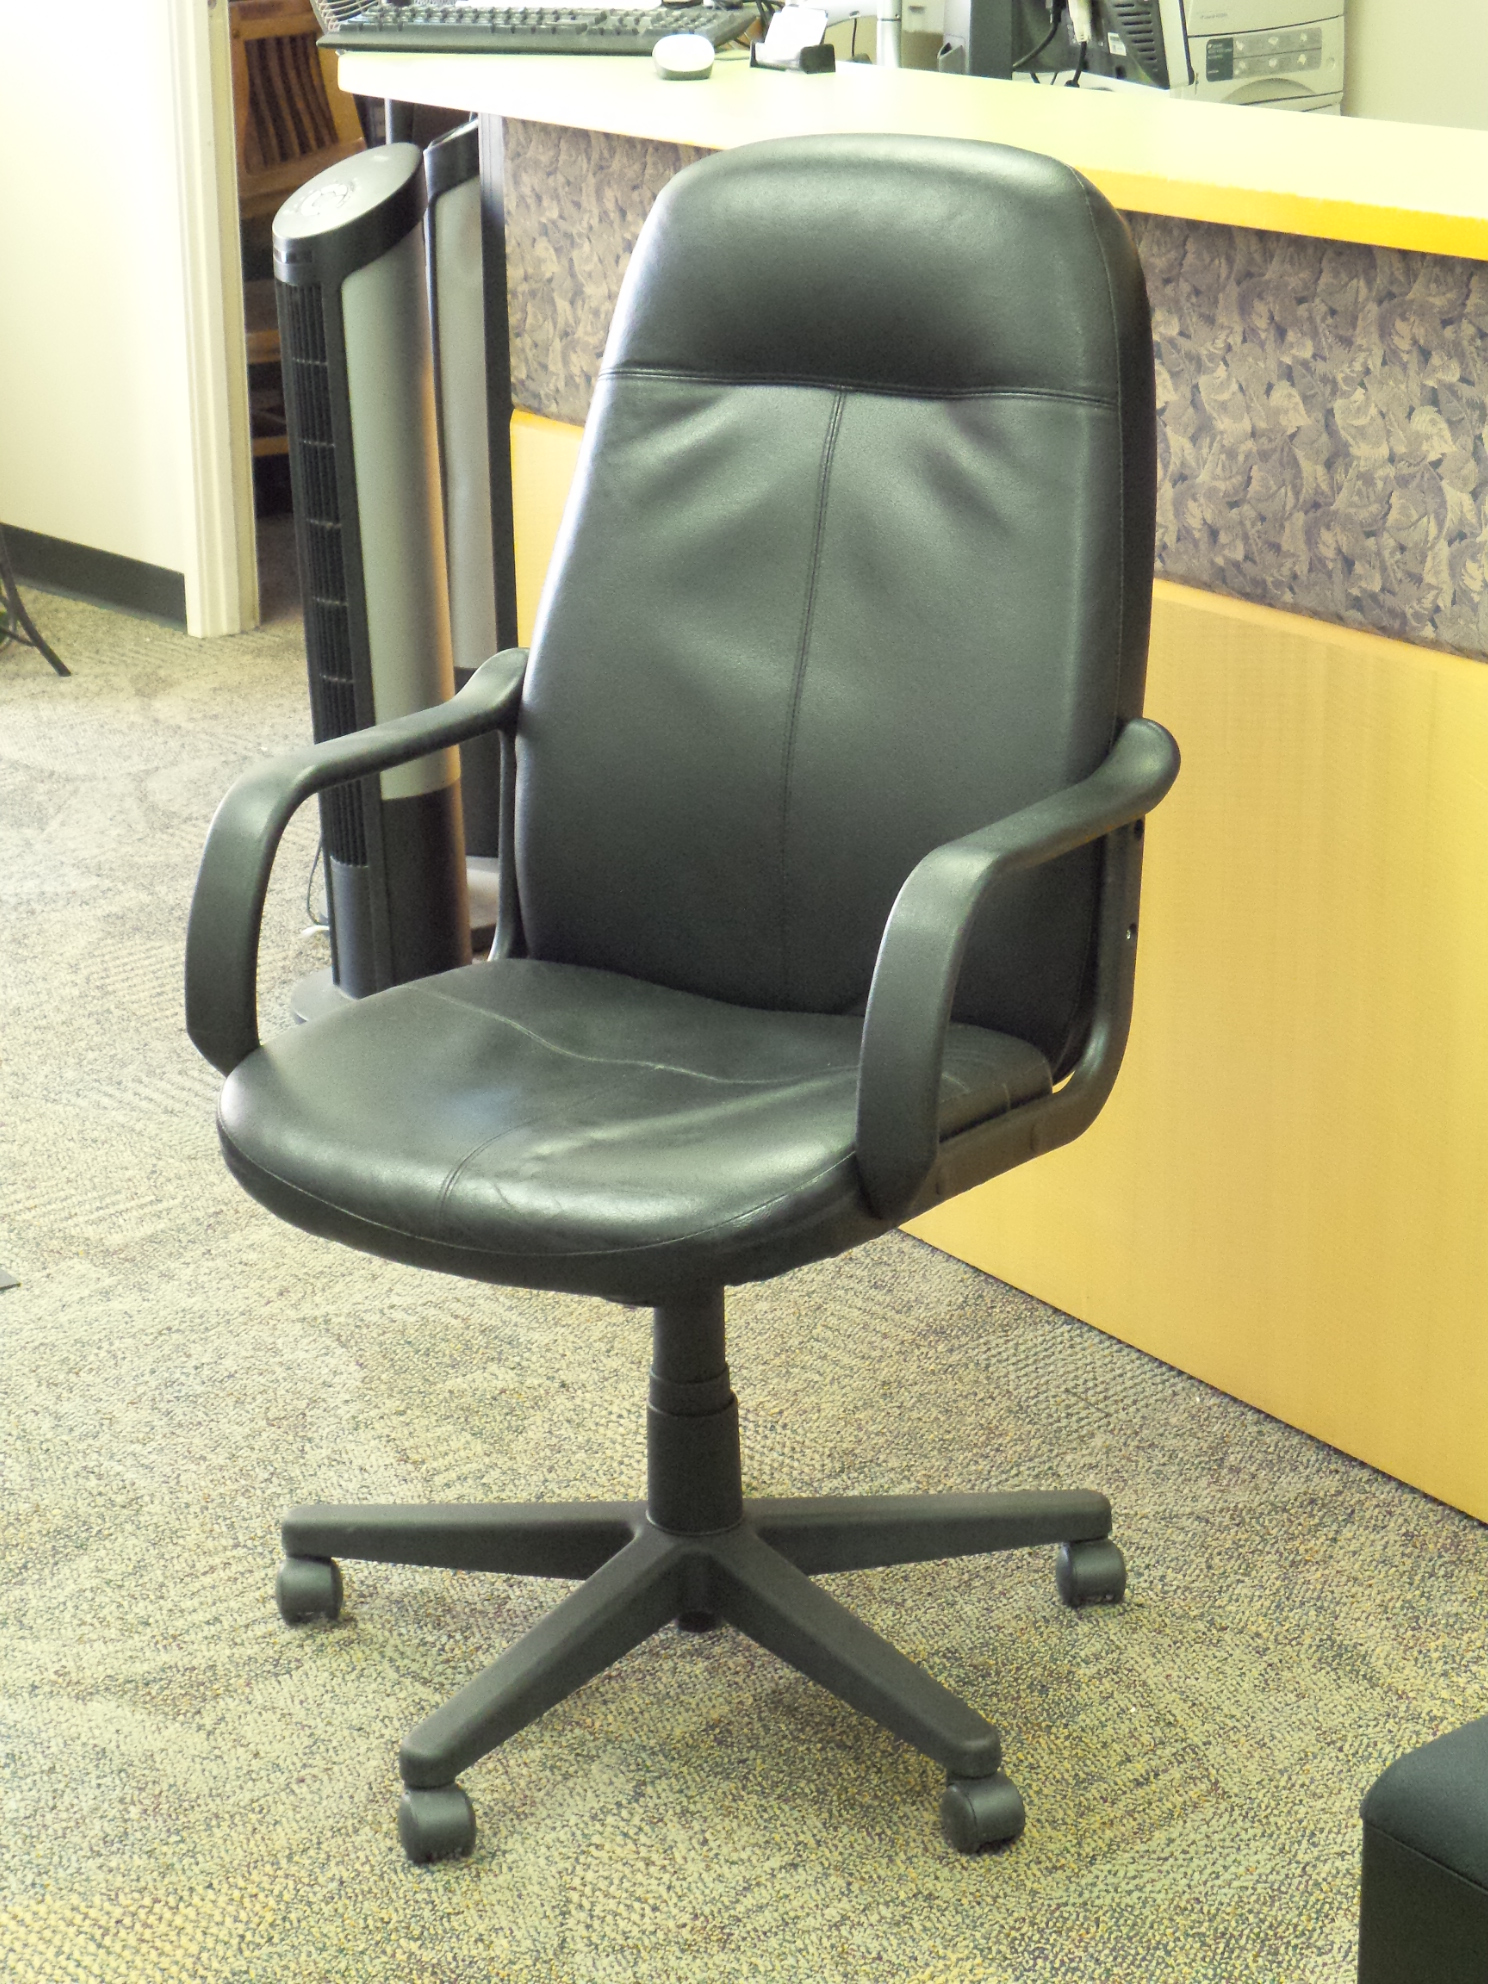 rolling chair parts phil teds poppy high back black leather executive meeting